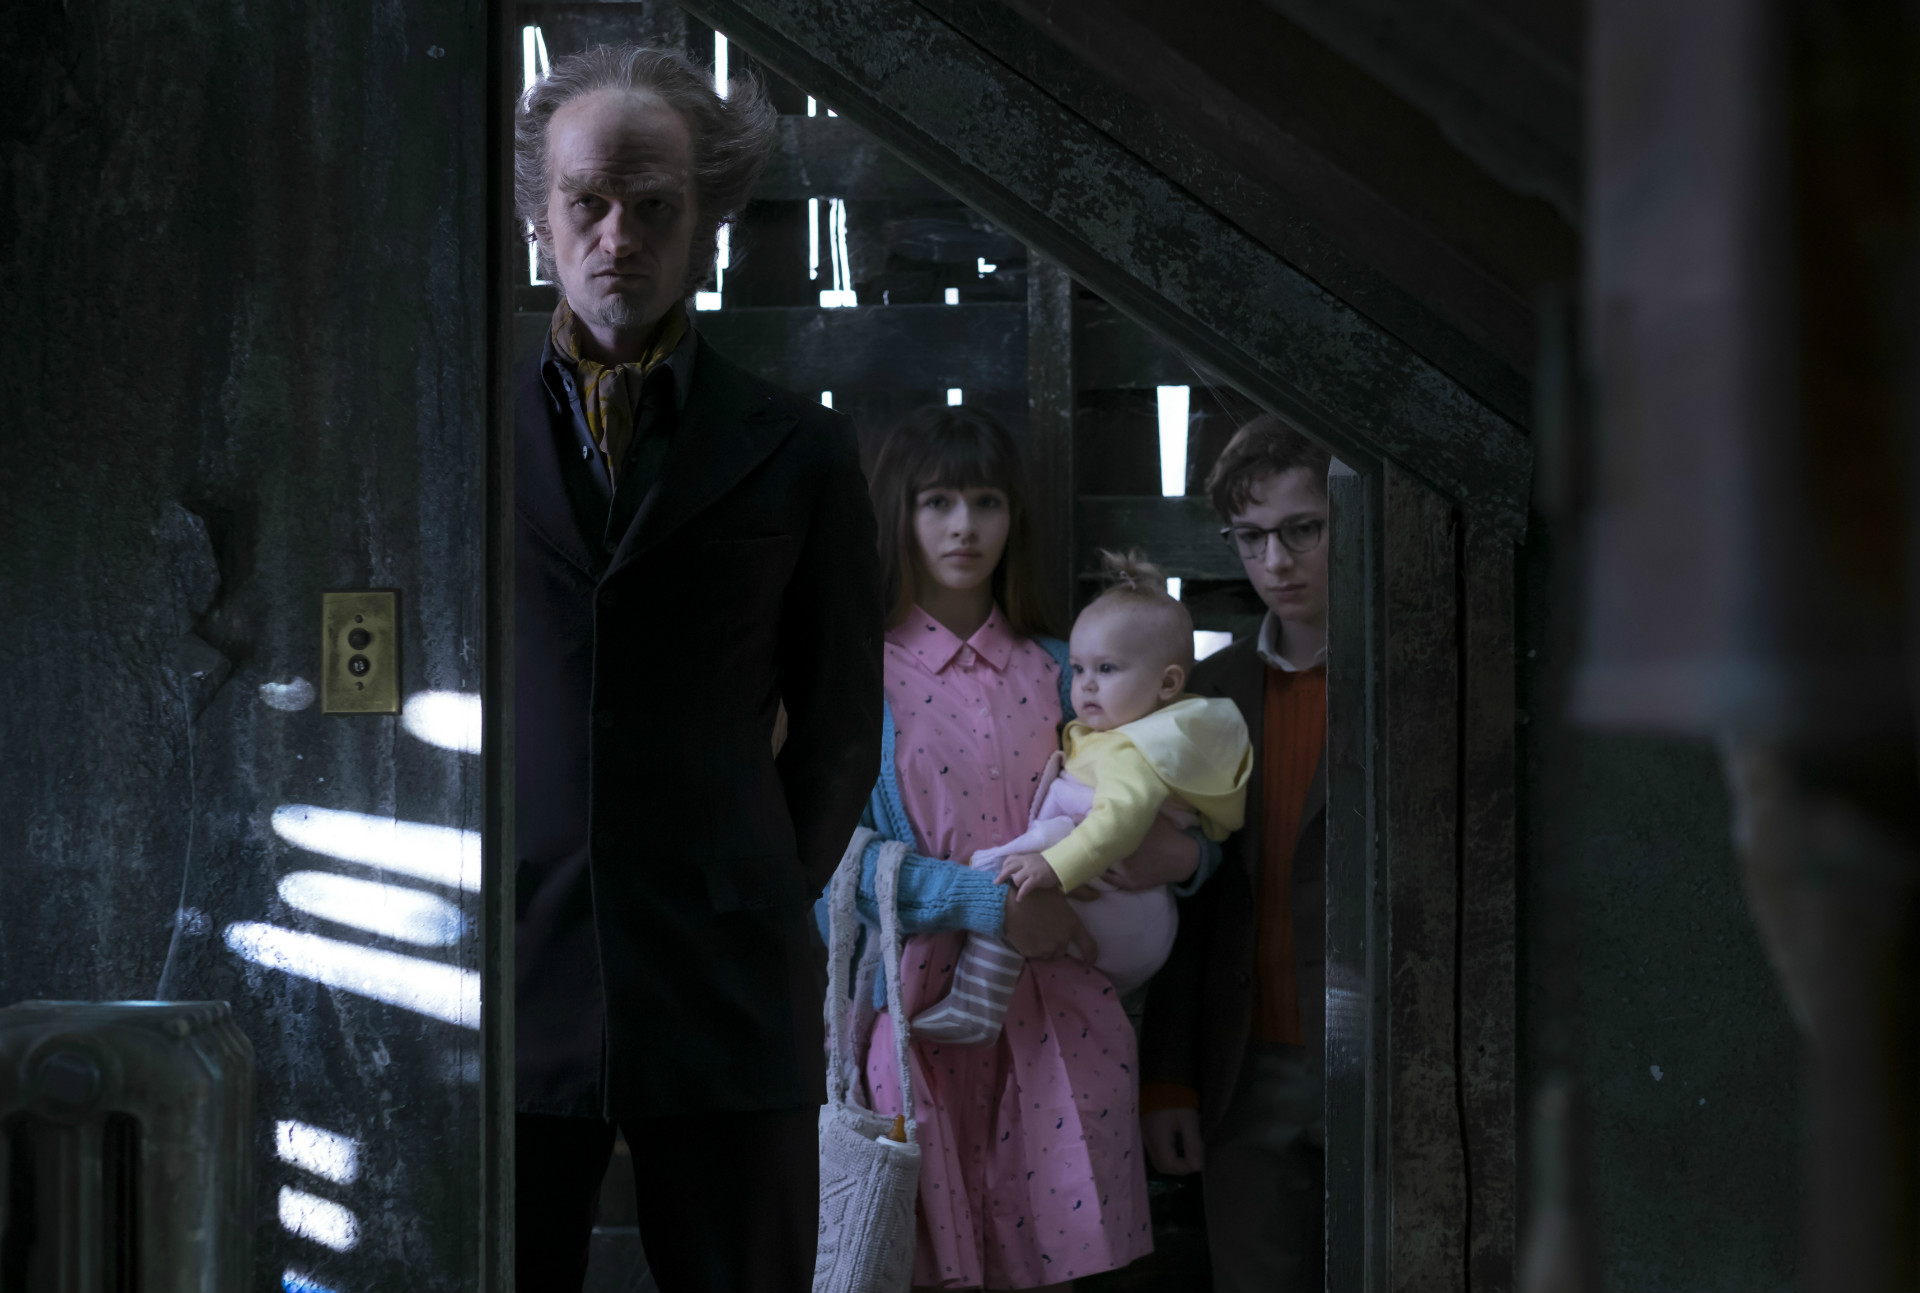 A Series of Unfortunate Events now on Netflix.